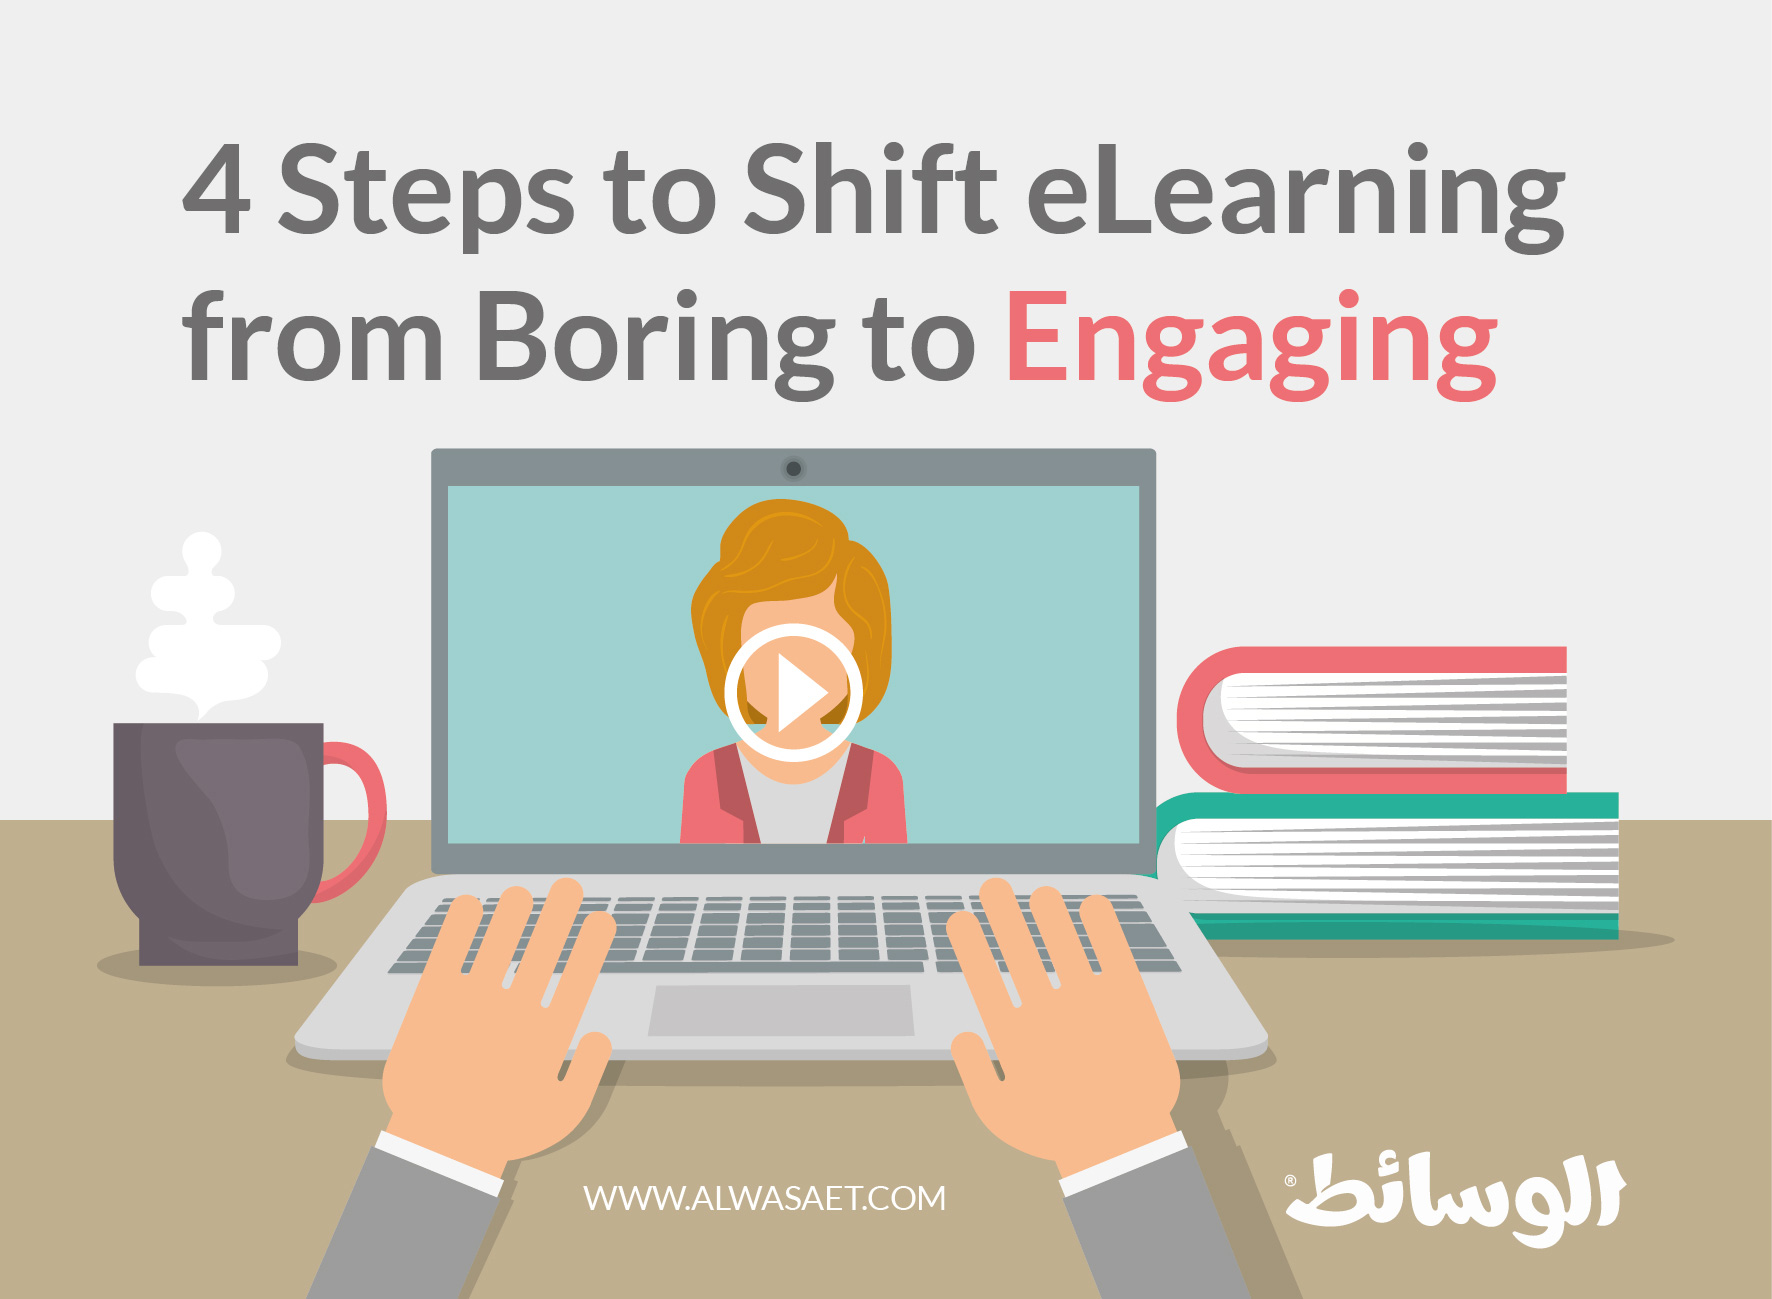 How to shift elearning from boring to engaging